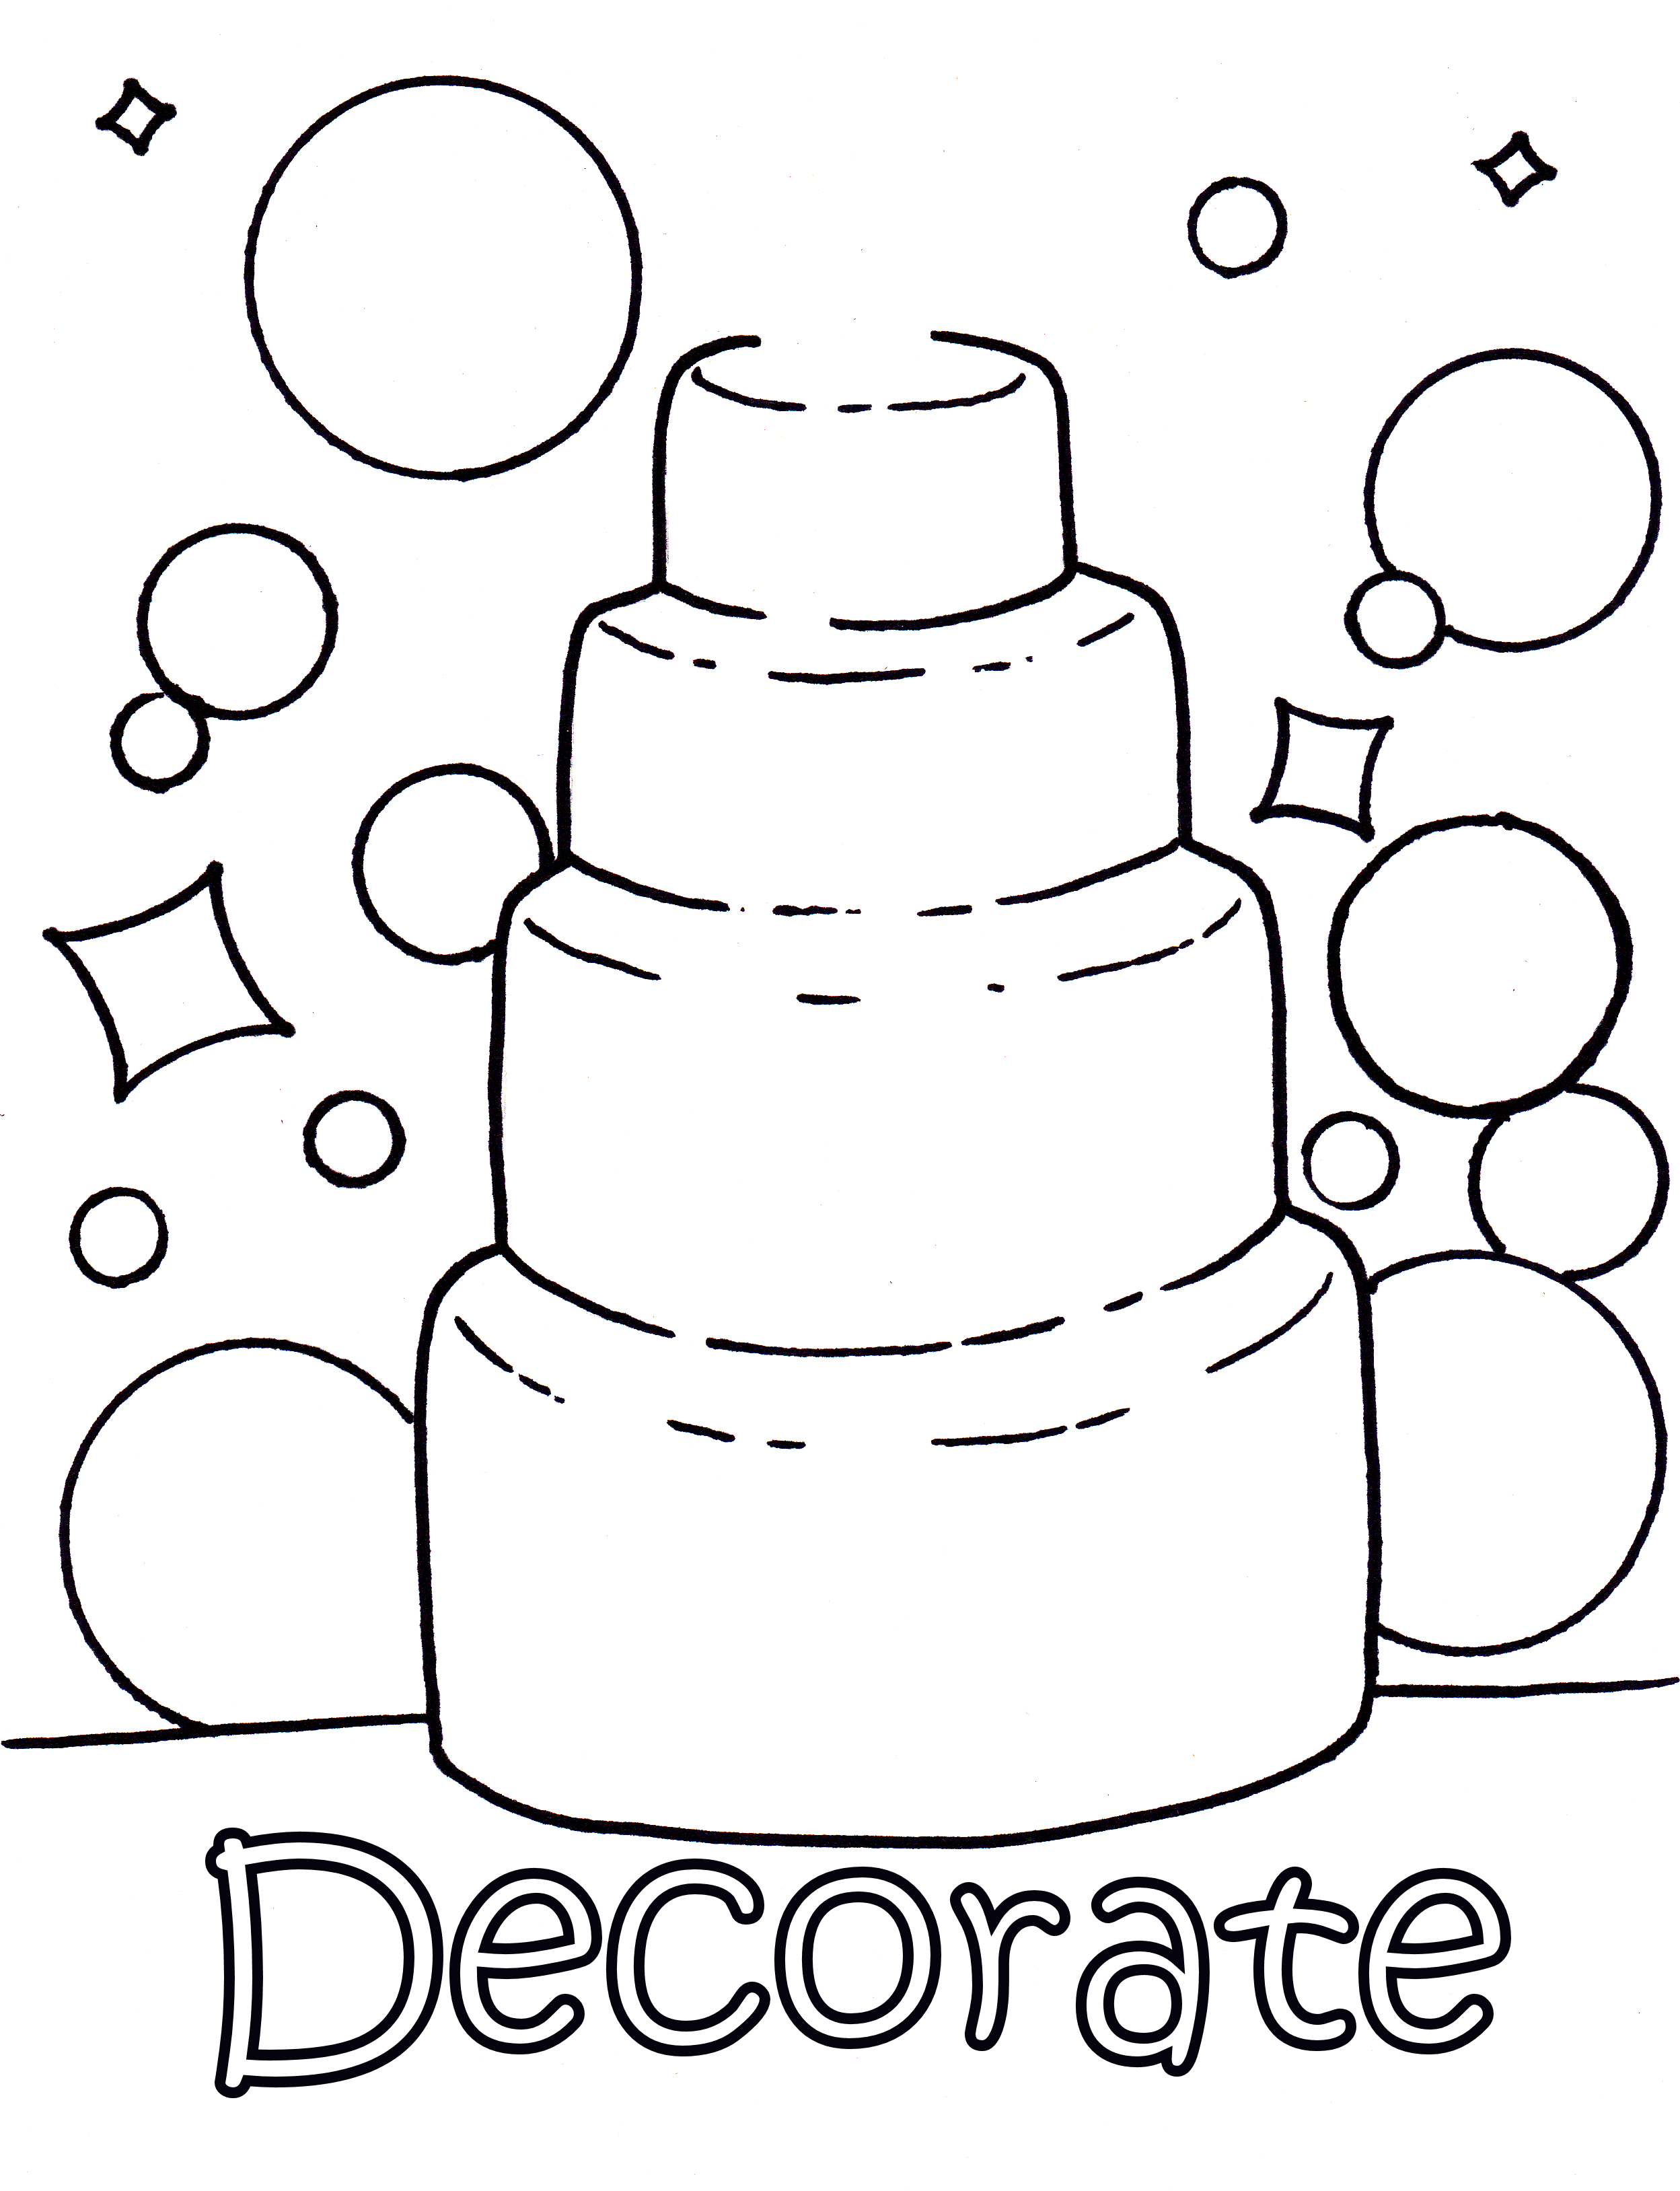 Rare Wedding Coloring Pages Free Www Bpsc Conf Org #15720 - Wedding Coloring Book Free Printable